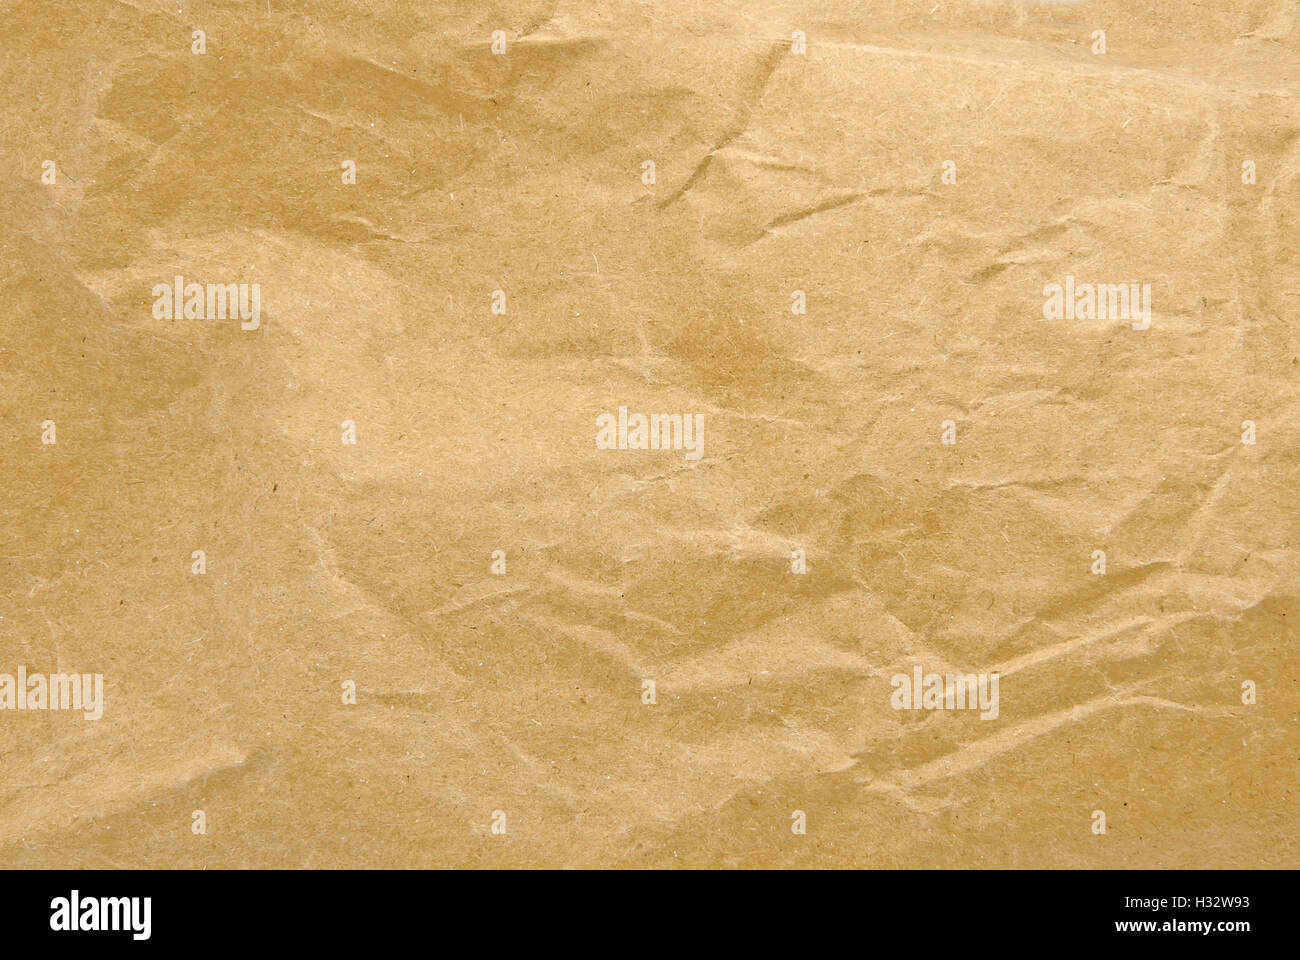 brown crumpled paper texture - Stock Image